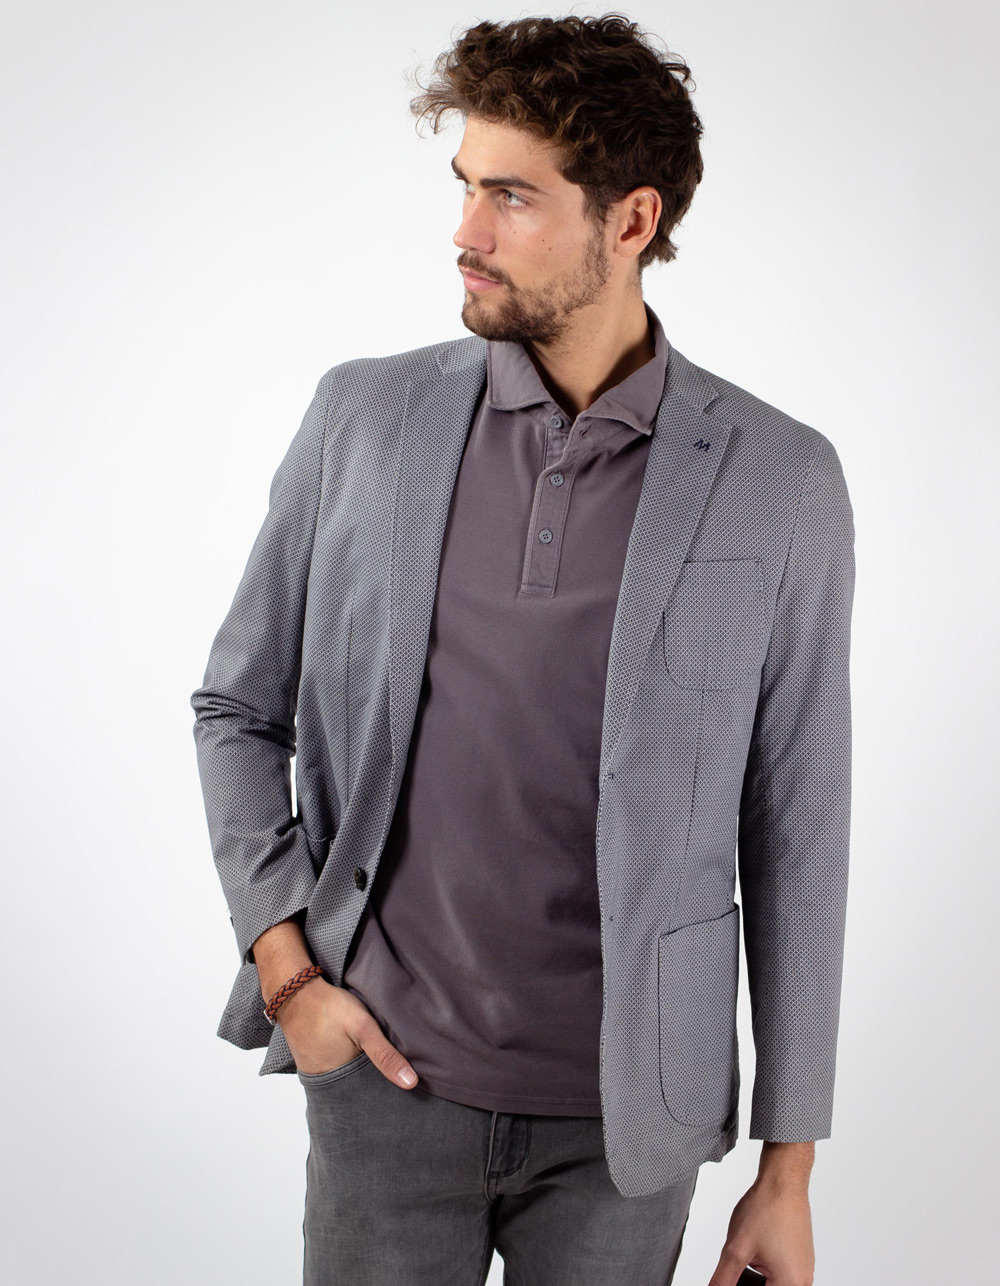 Pattern blazer with elbow patches